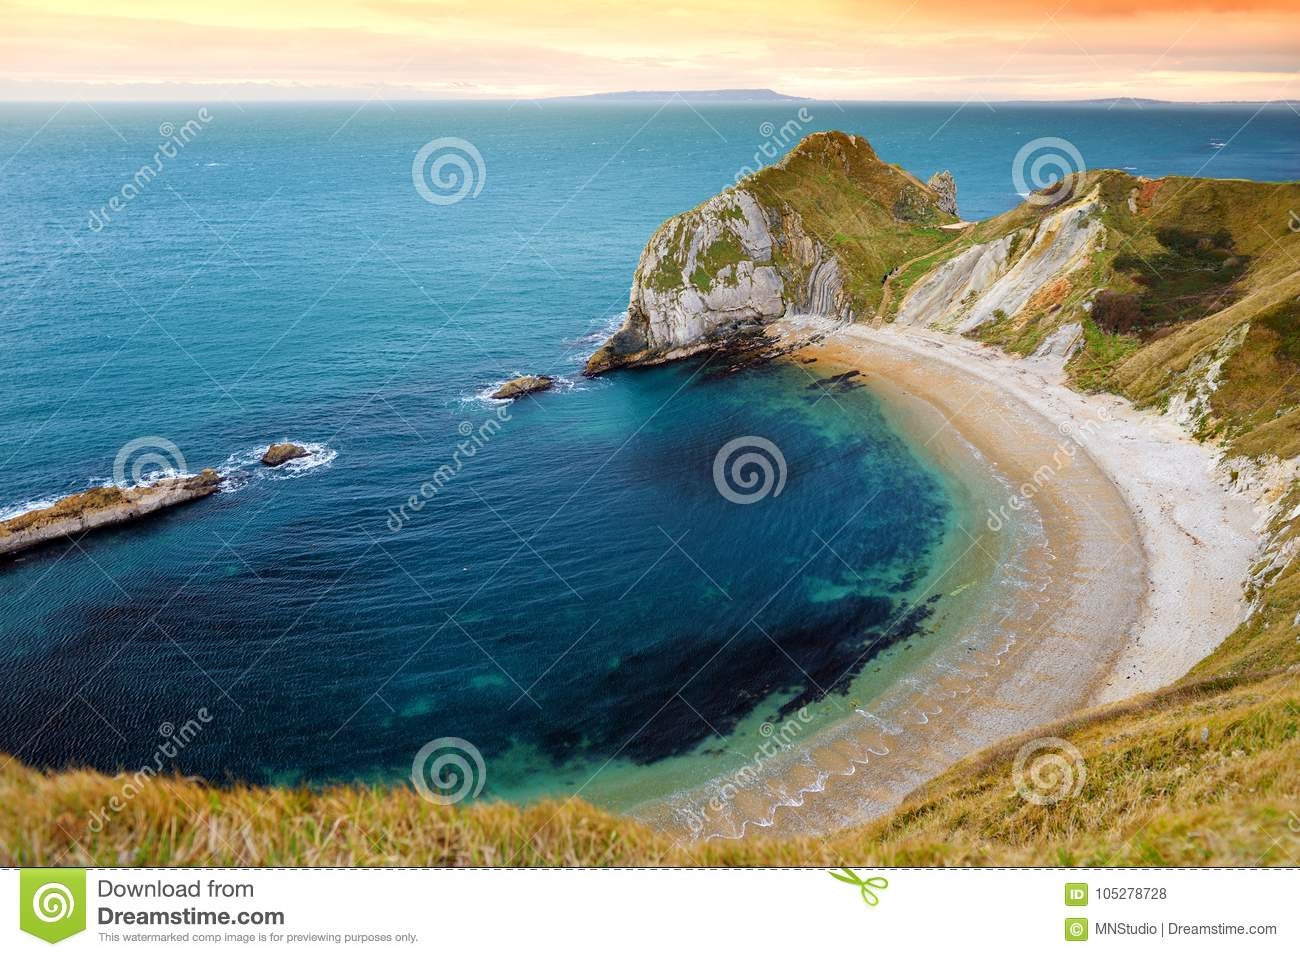 Man O`War Cove on the Dorset coast in southern England, between the headlands of Durdle Door to the west and Man O War Head to th